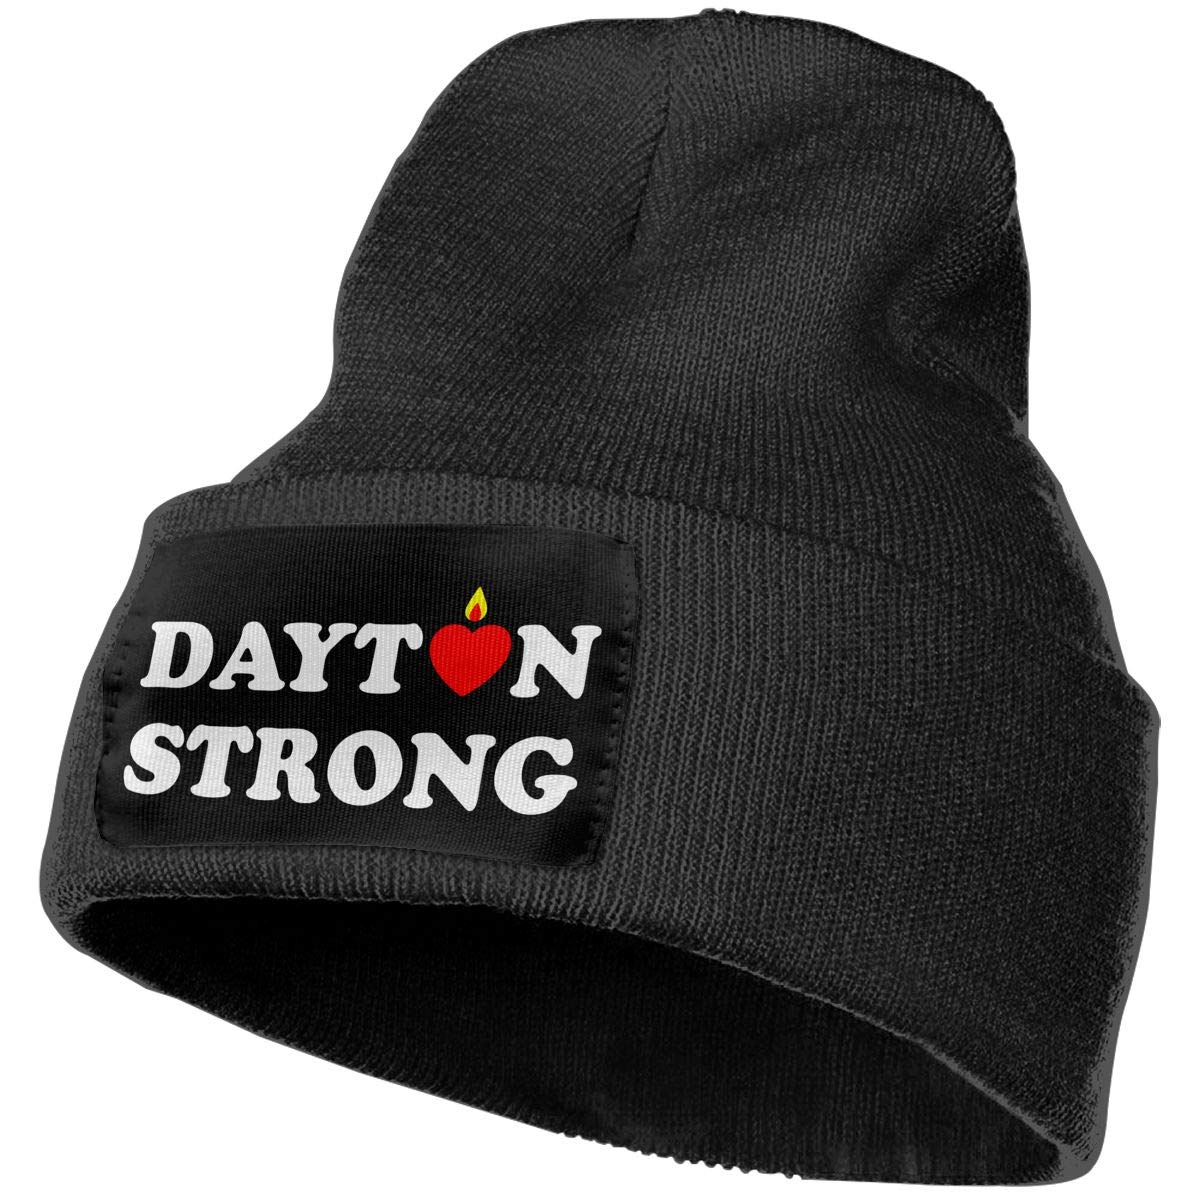 COLLJL-8 Unisex Dayton Strong Outdoor Fashion Knit Beanies Hat Soft Winter Skull Caps